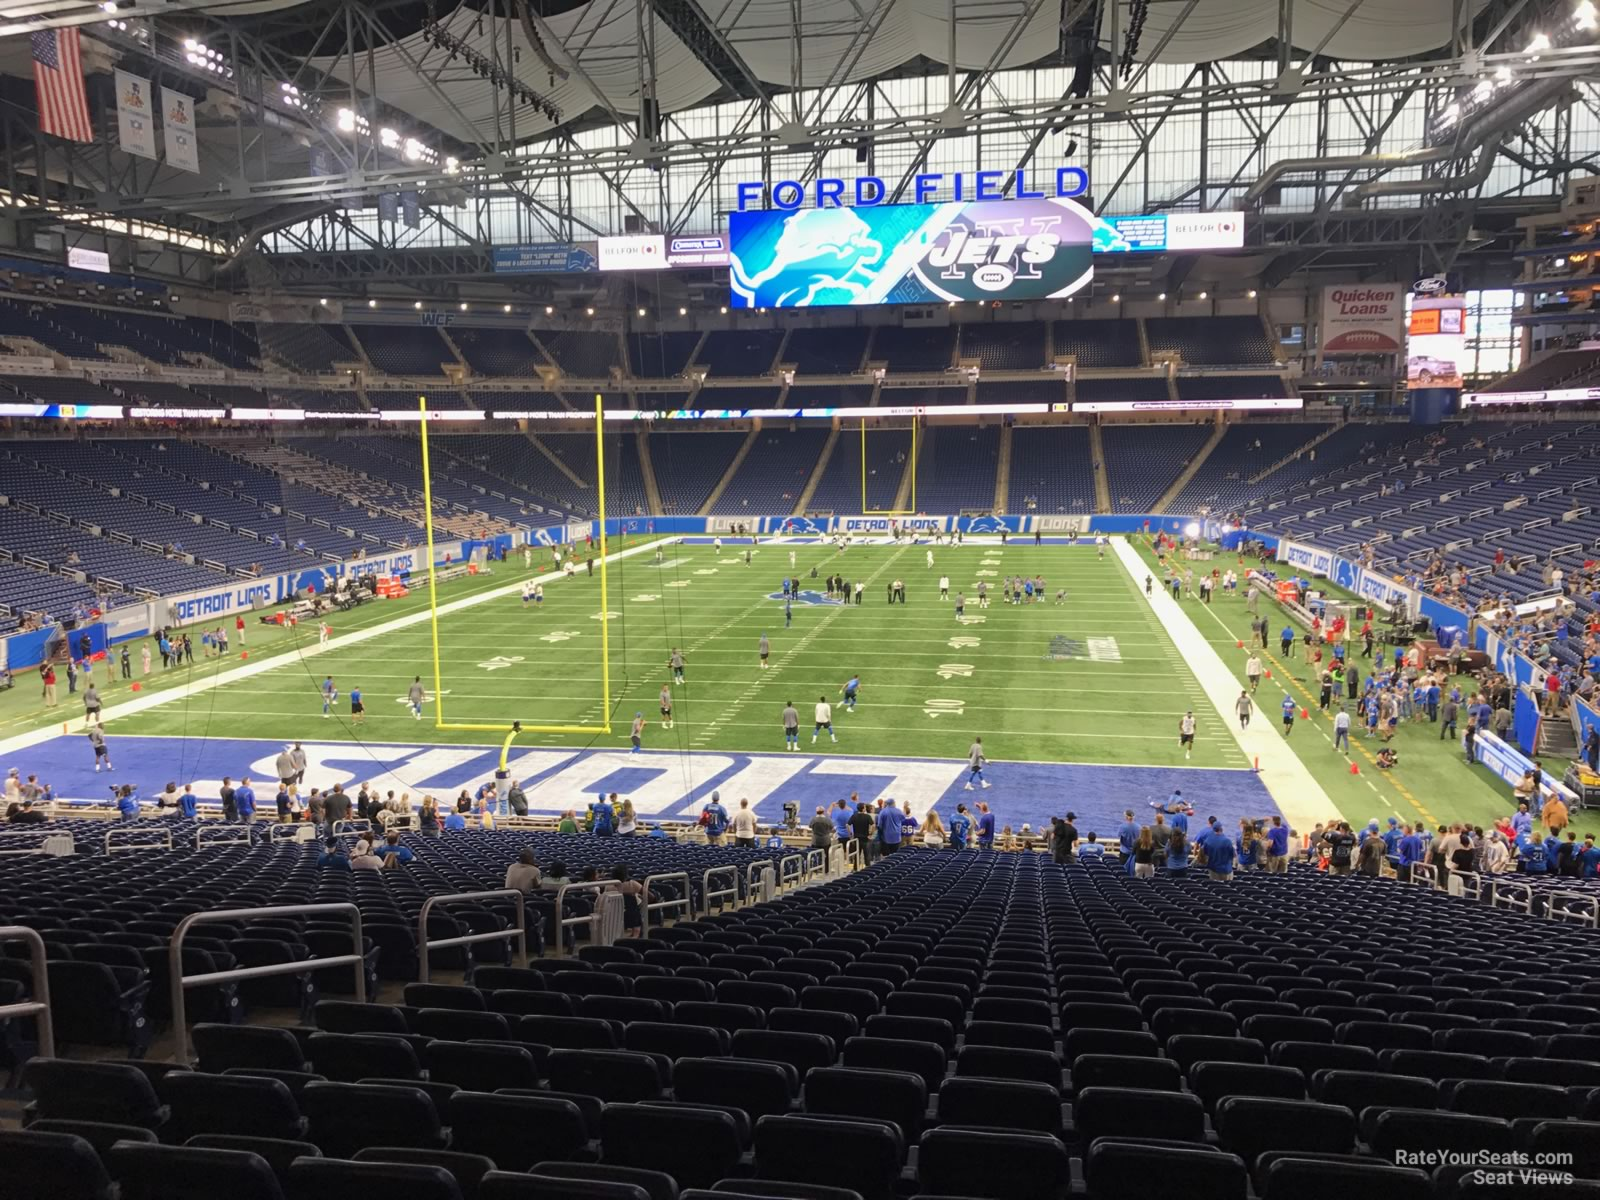 Section 139 seat view